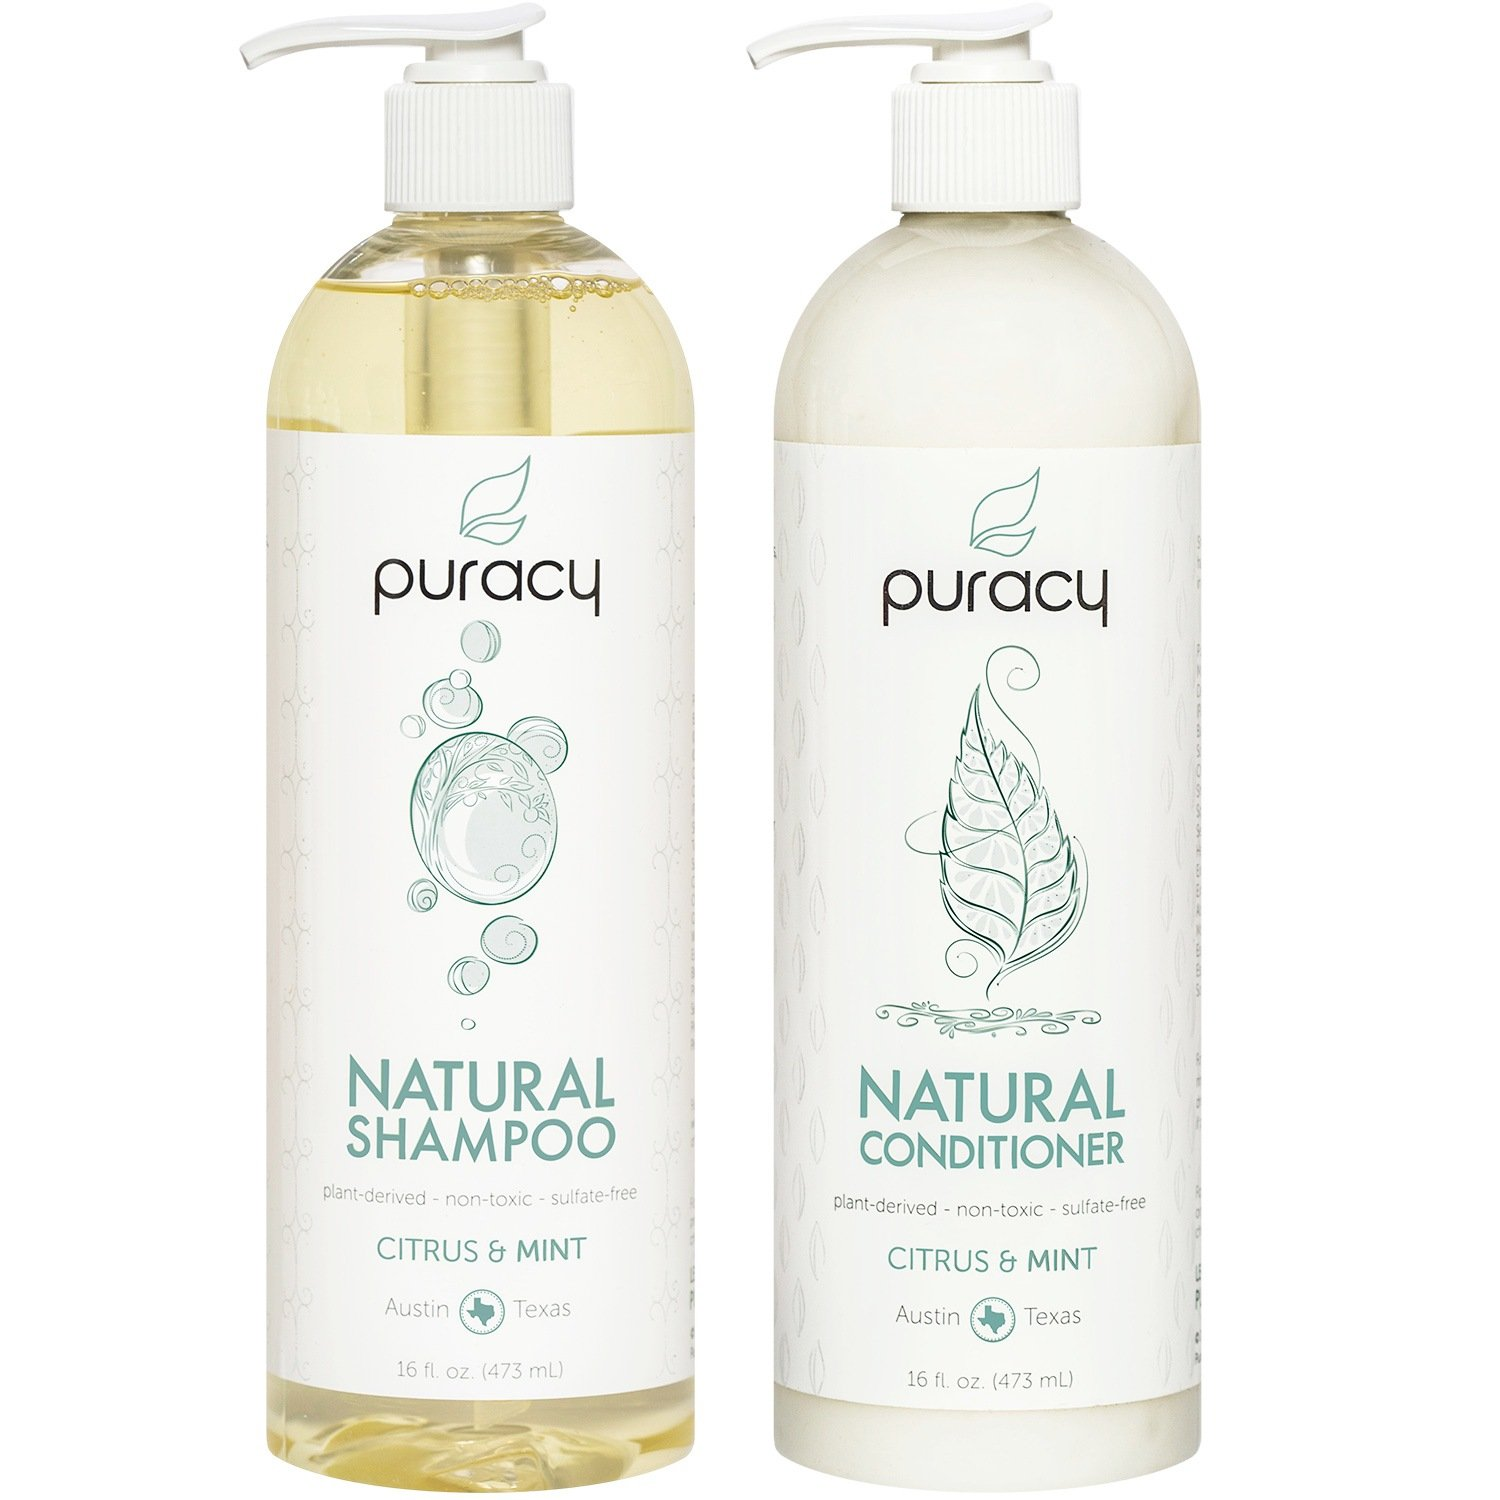 Puracy Natural Shampoo and Conditioner Set, Vegan Hair Care, No Harsh Chemicals, 16 Ounce, (2-Pack) by Puracy